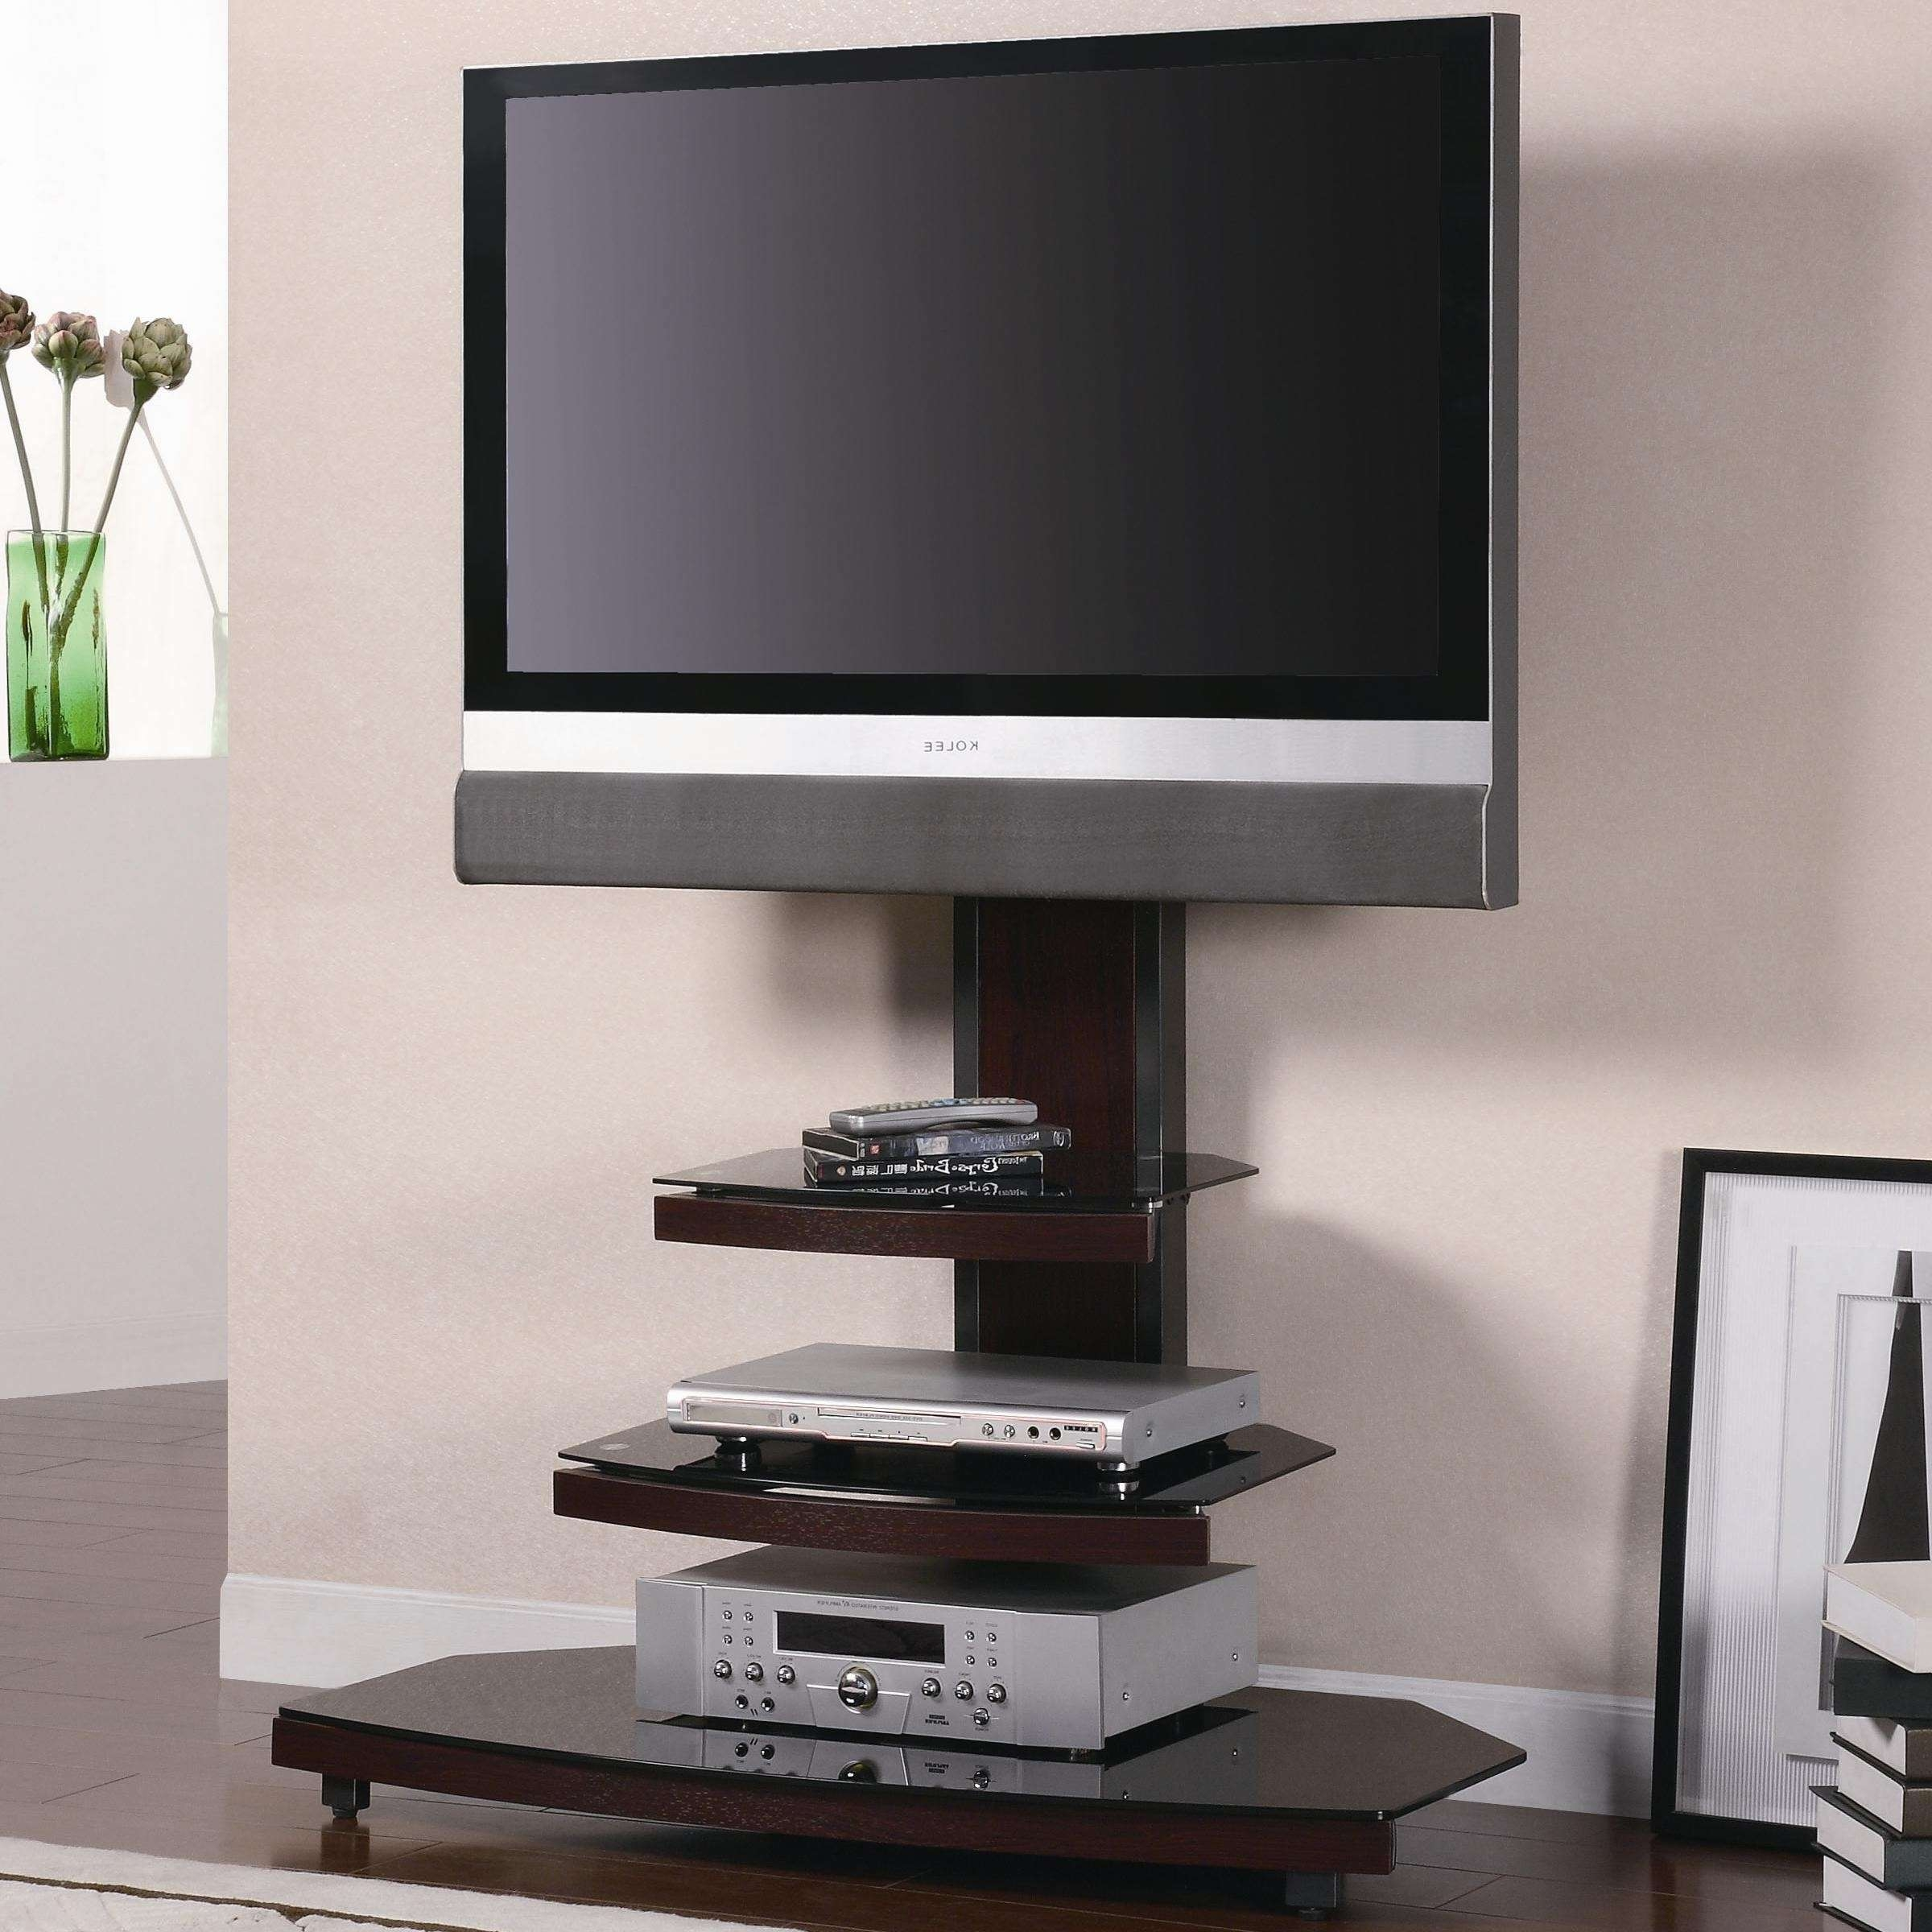 Modern Tv Stands – 1236 | Home Decorating Designs Intended For Modern Glass Tv Stands (View 12 of 15)